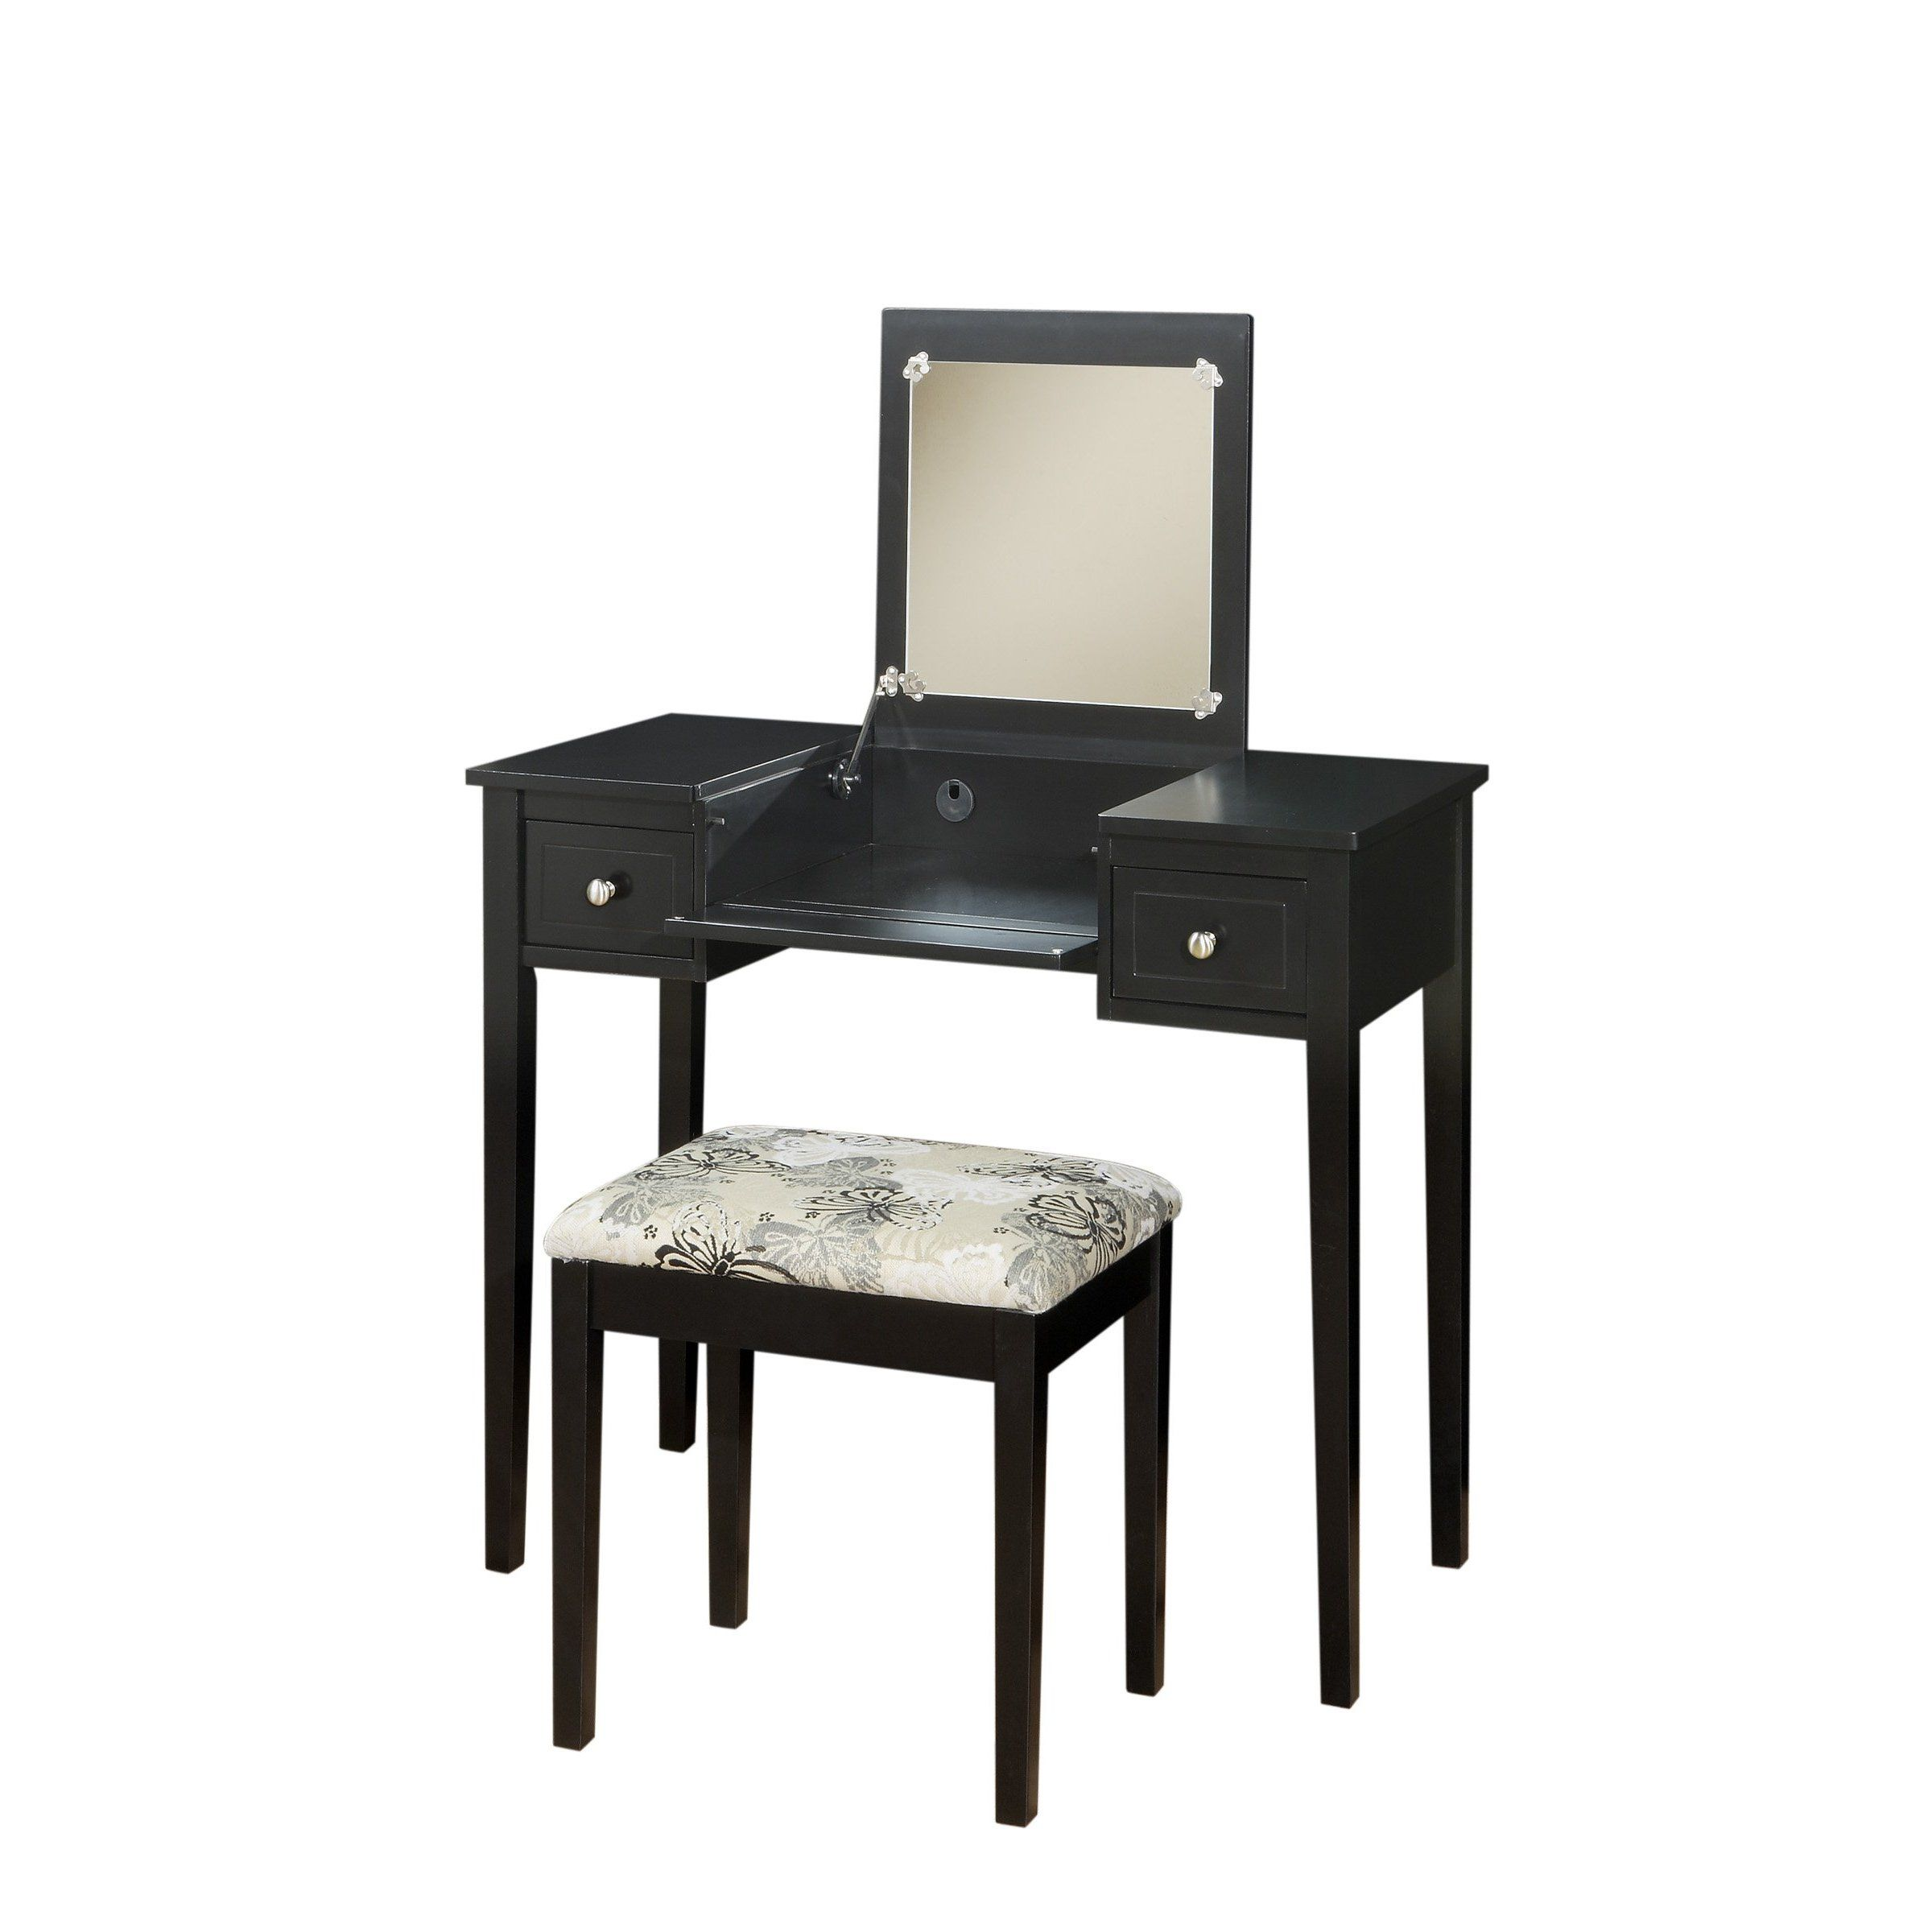 FurnitureMaxx Wood Black Vanity Set (Vanity Table with Bench) : Bedroom Vanities